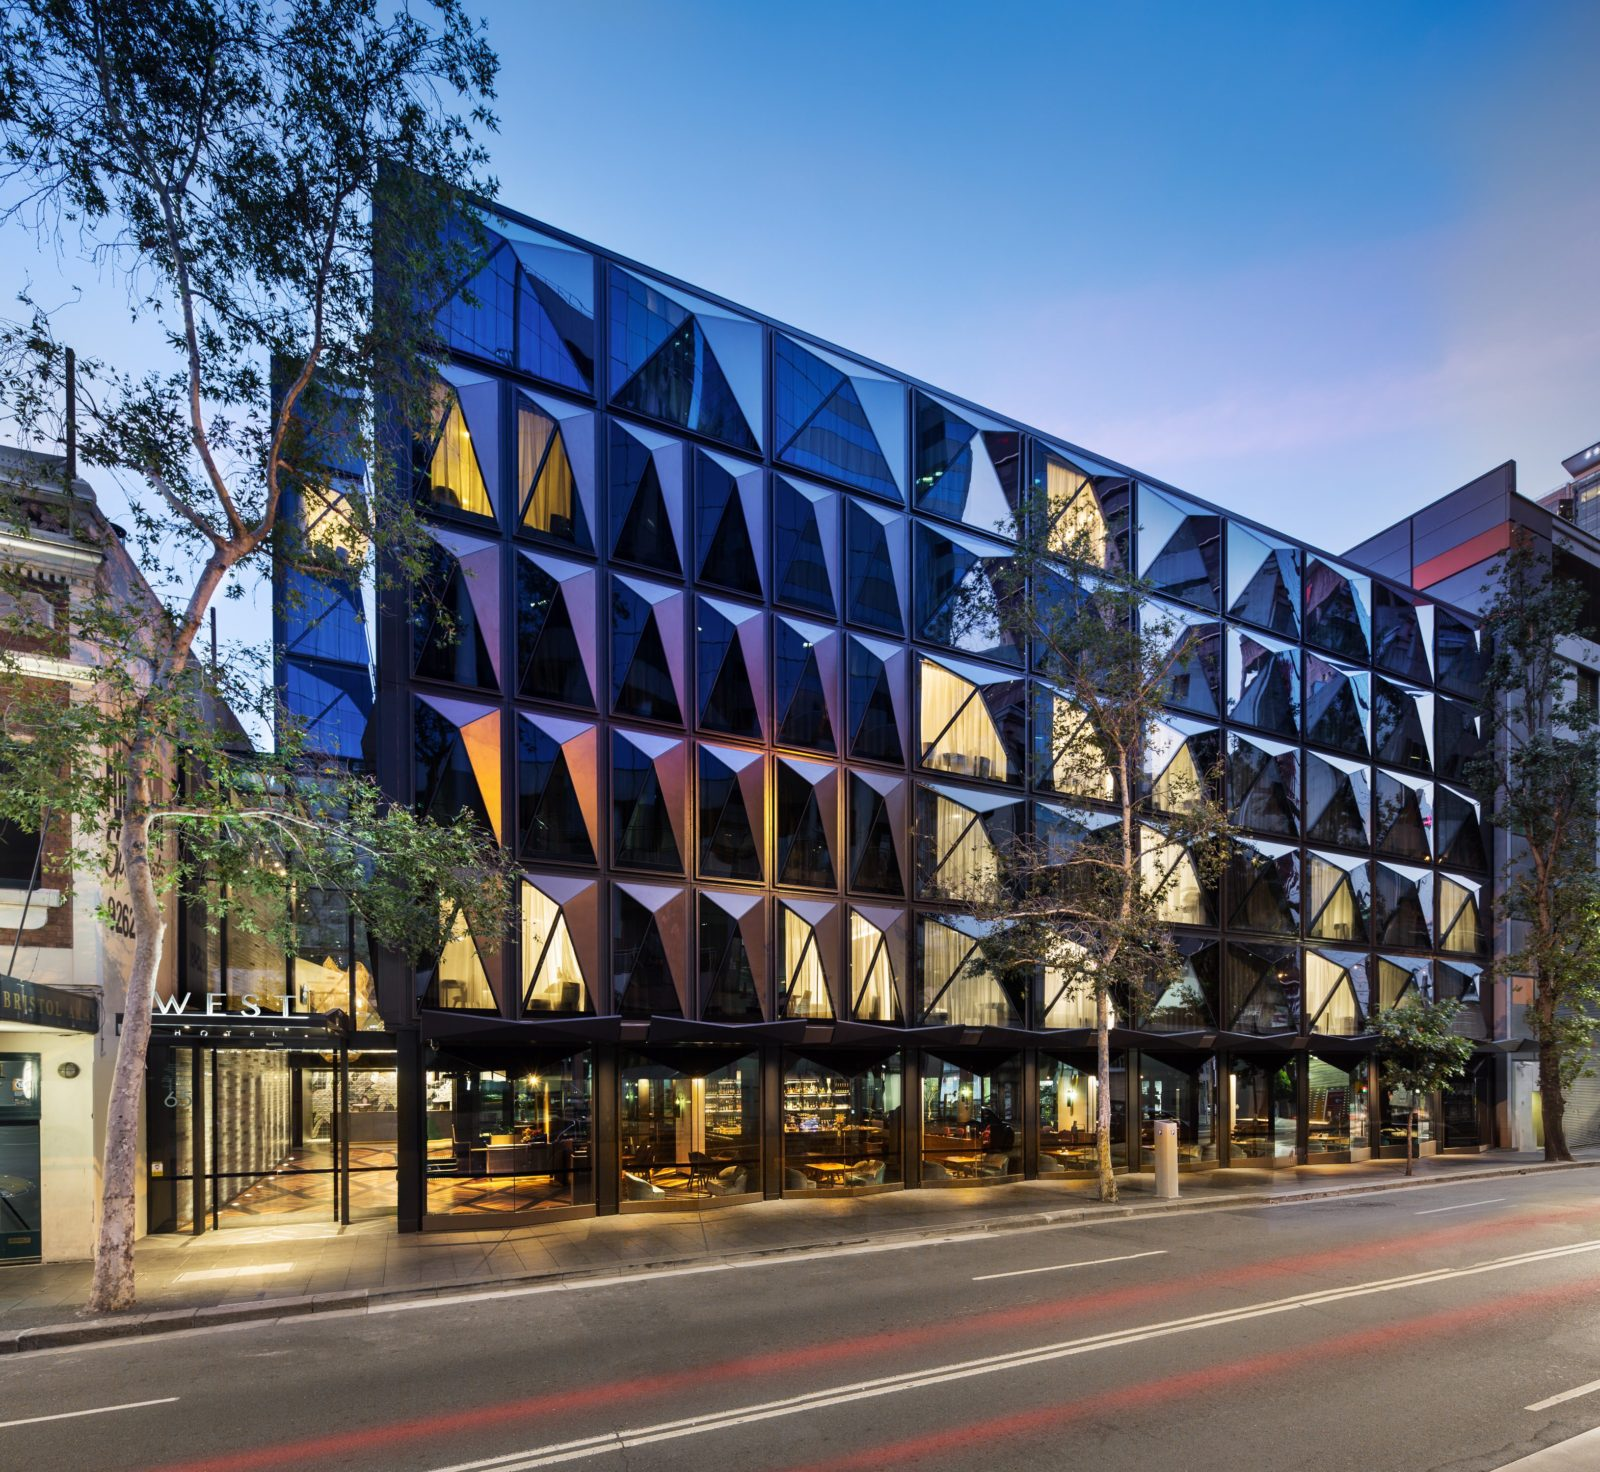 West Hotel is located in Sydney's CBD on Sussex Street, near Barangaroo and Darling Harbour